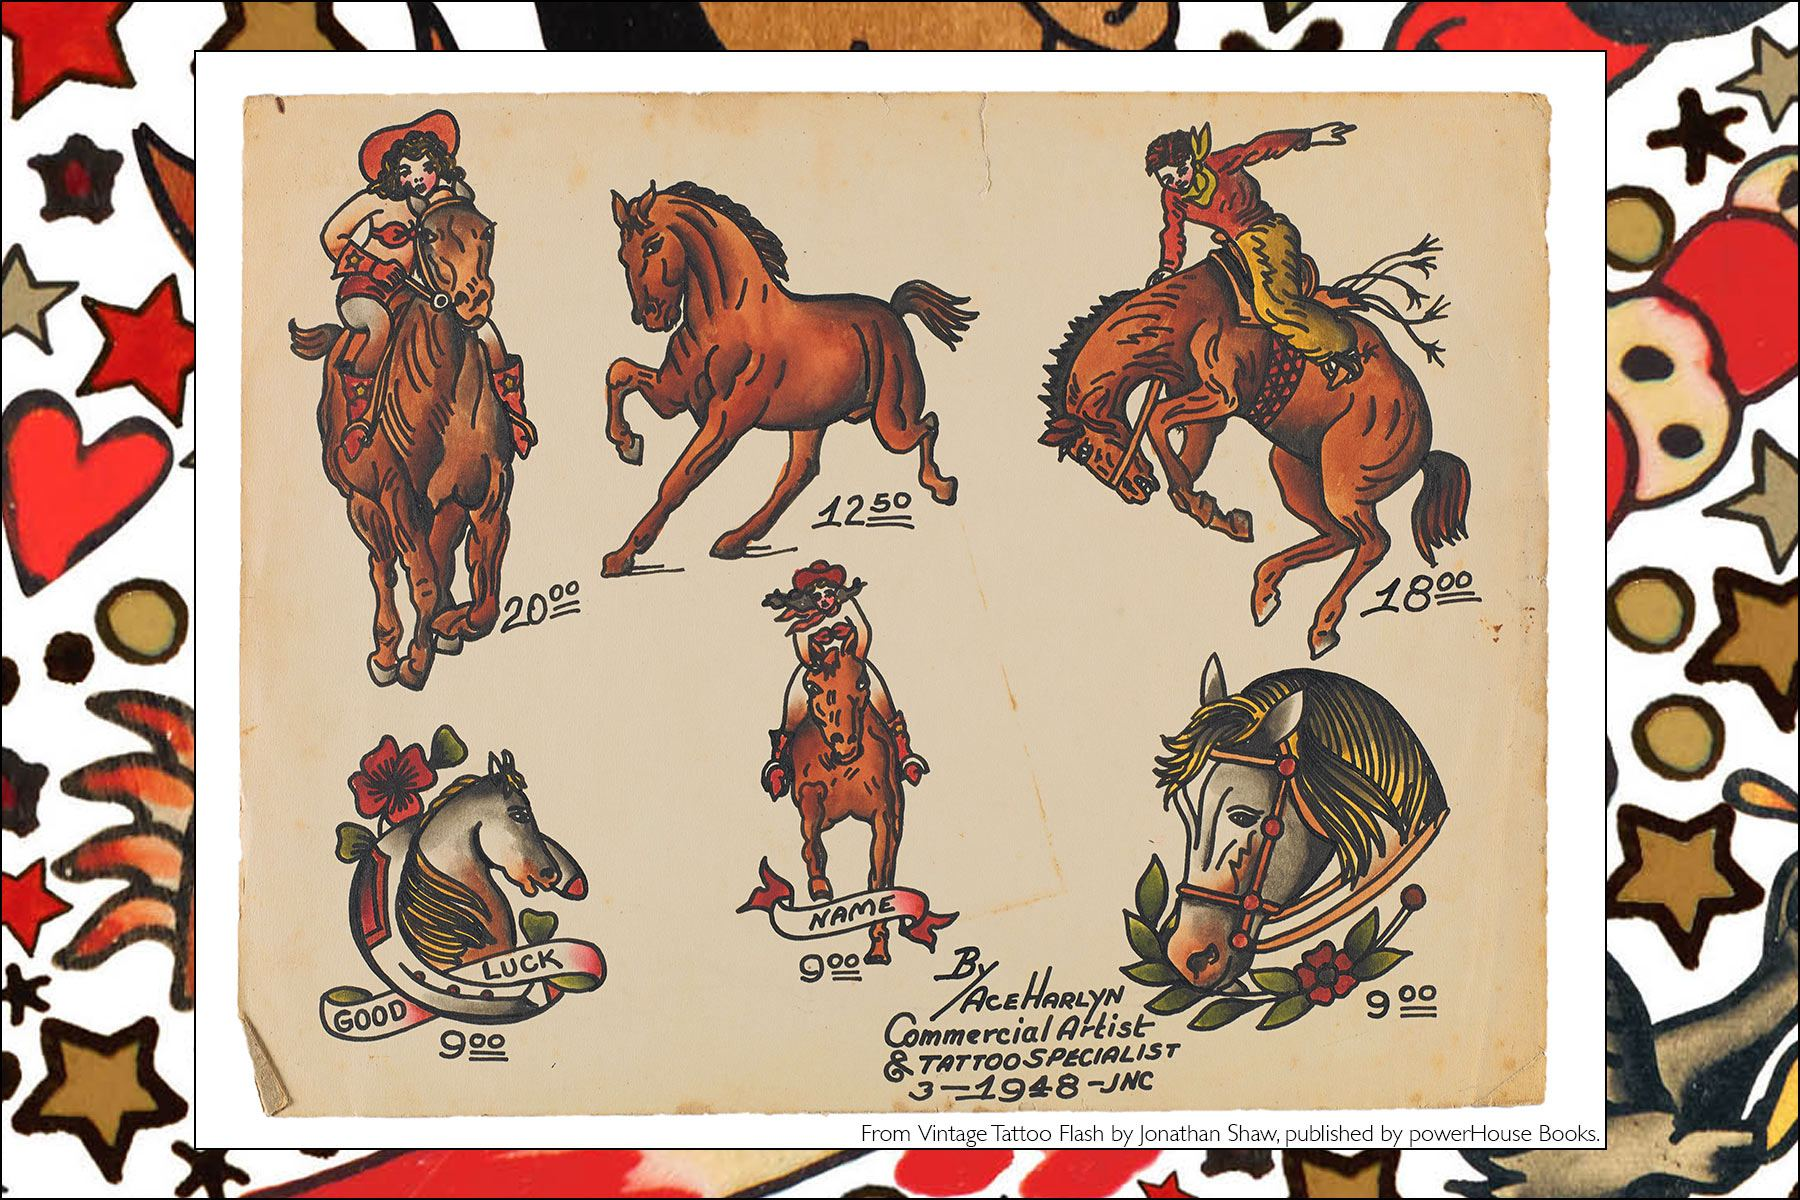 Tattoo flash of horses, from the collection of Jonathan Shaw's publication Vintage Tattoo Flash from Powerhouse Books. Ponyboy magazine NY.